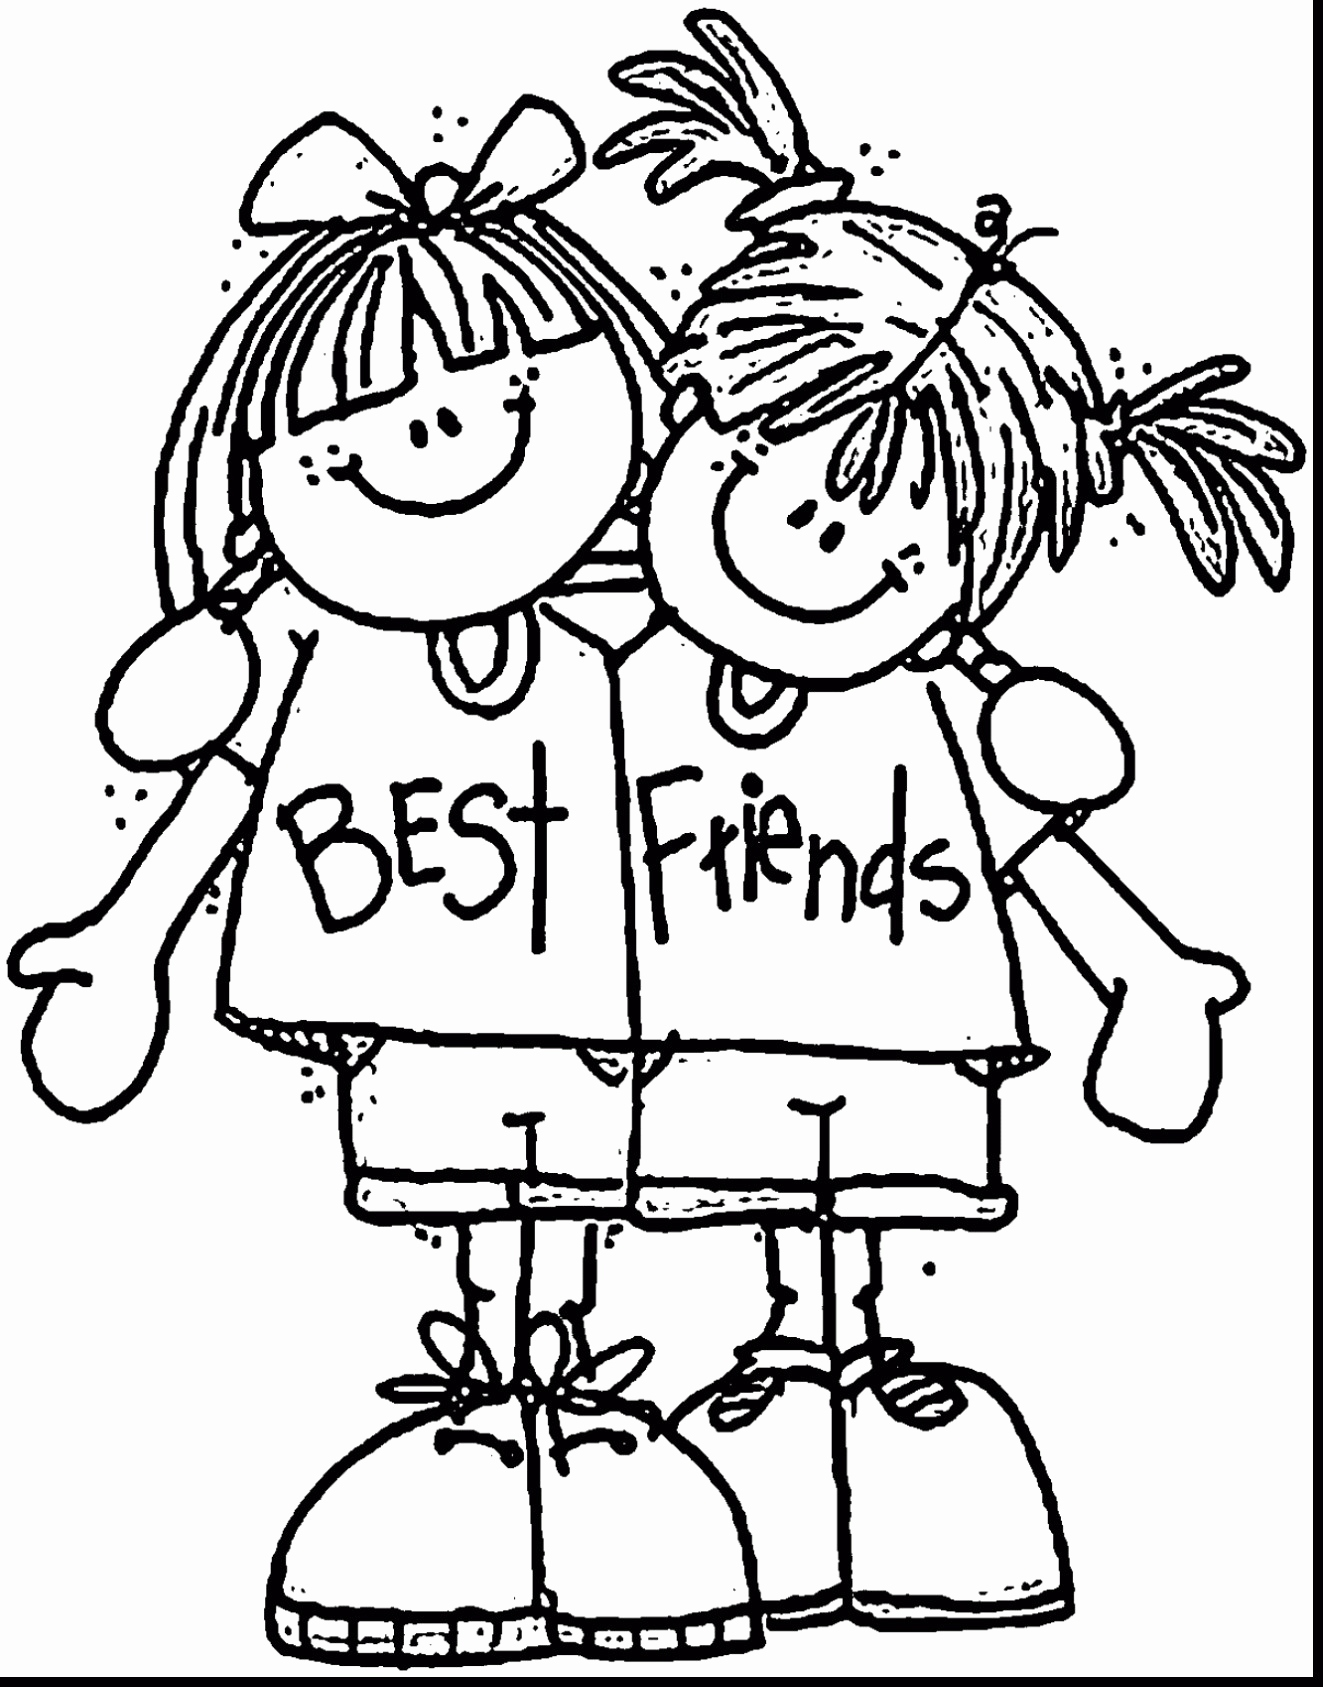 Best Friend Coloring Pages To Print At Getcolorings